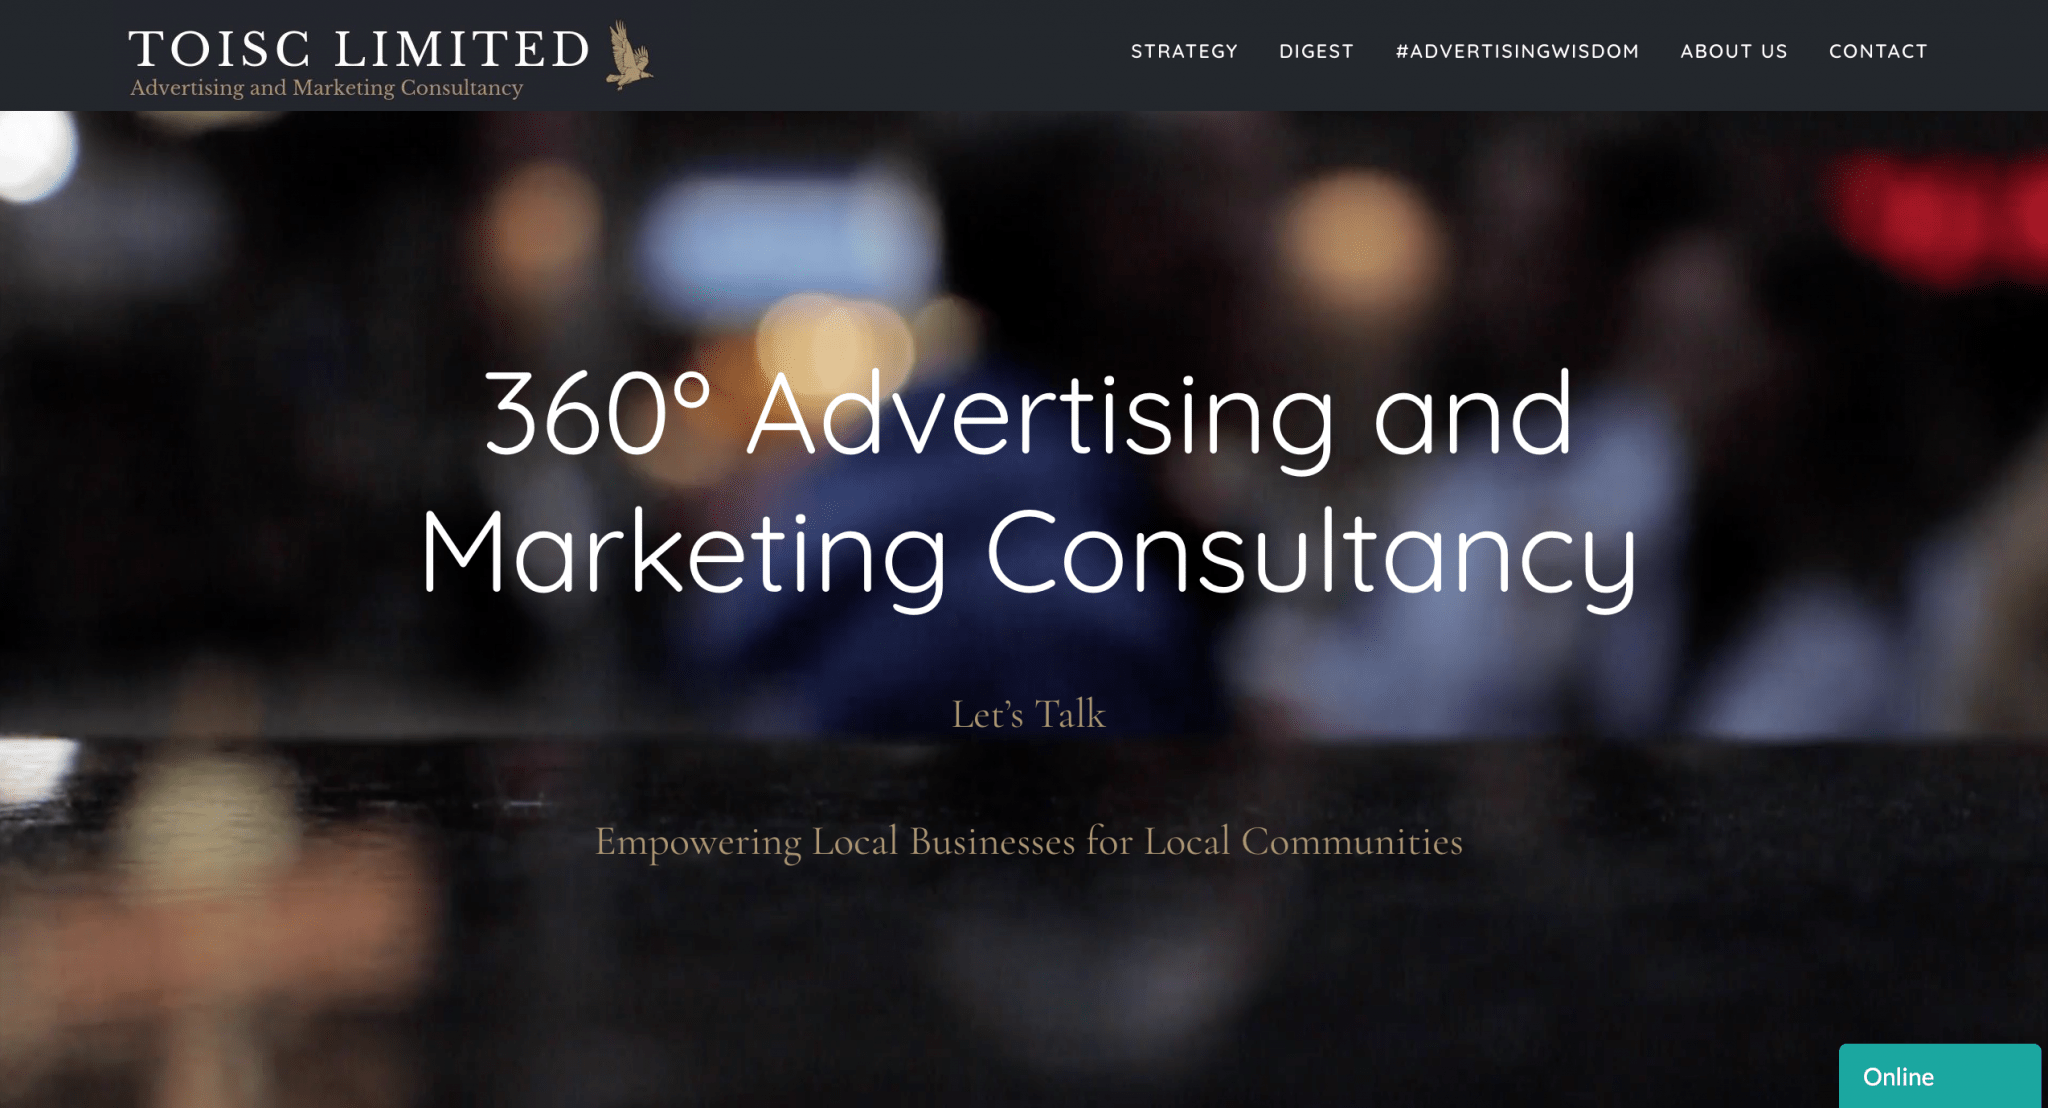 Above the Fold, Welcome, Website Design, Themes, Toisc Limited, Full Screen View